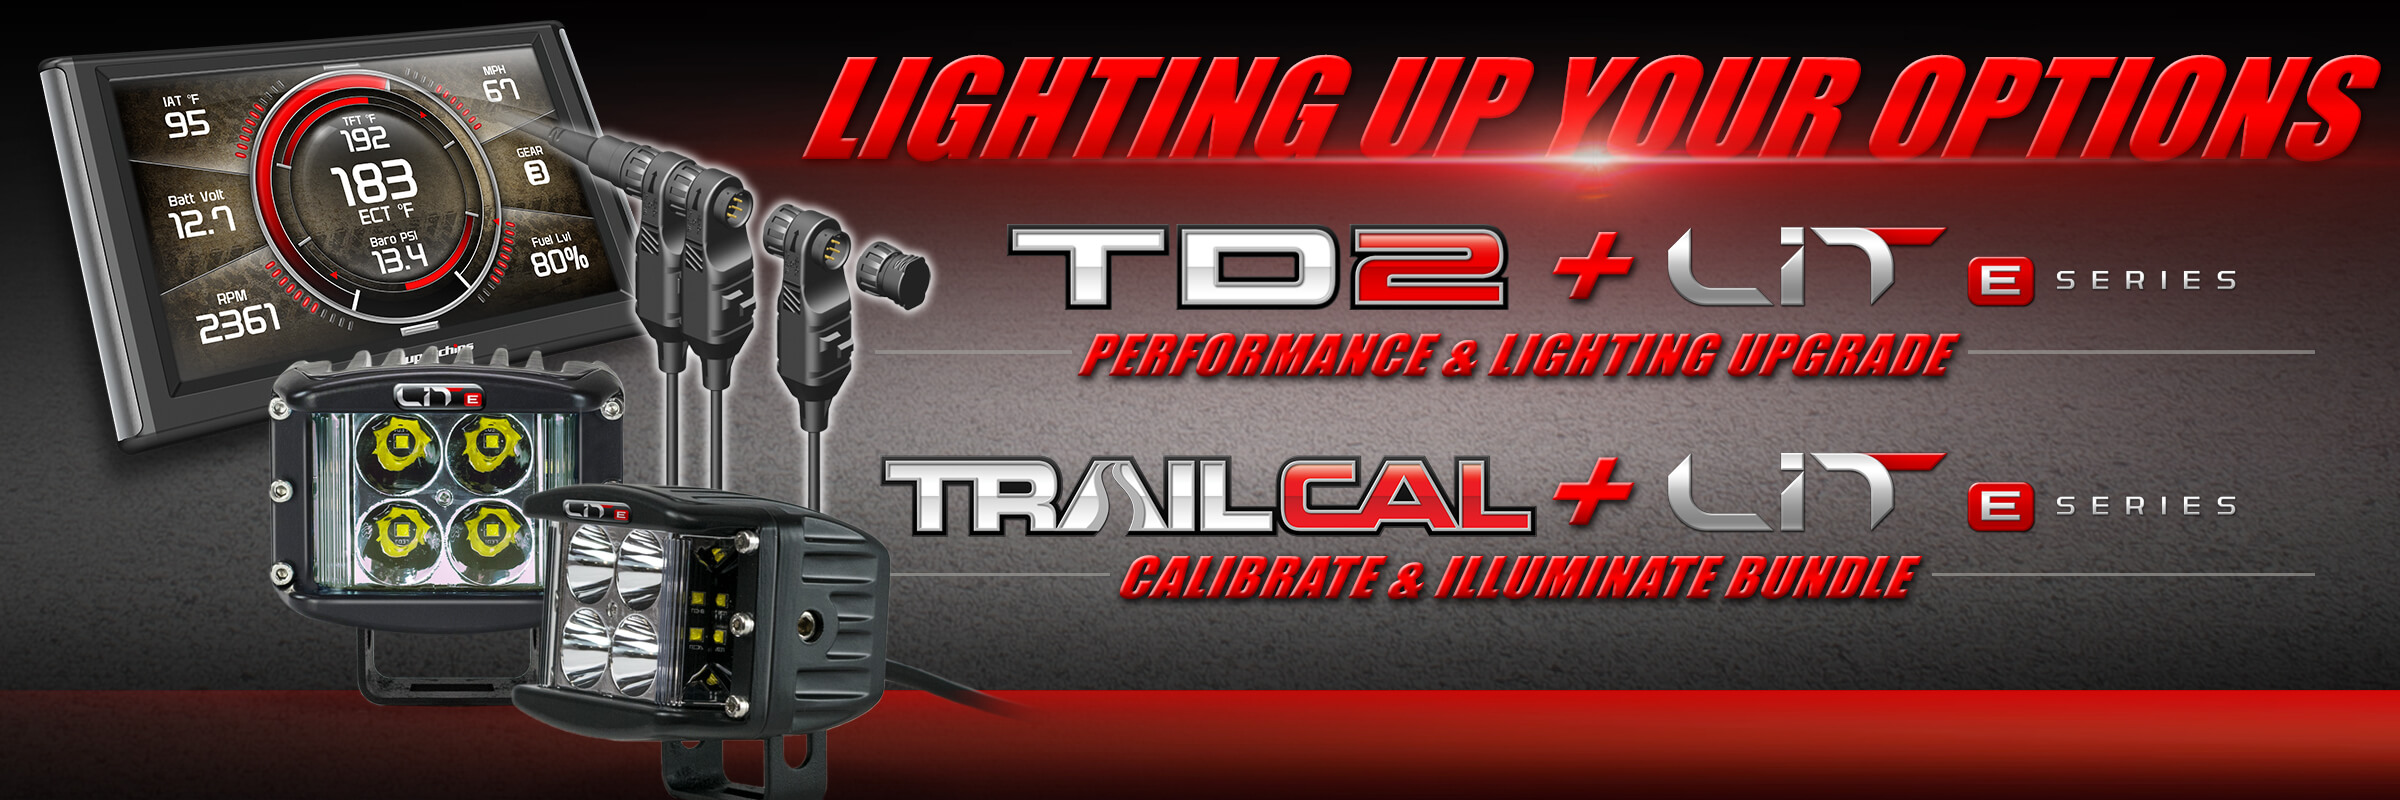 Jeep® Tuner + Intake + Exhaust for your JK Wrangler® by